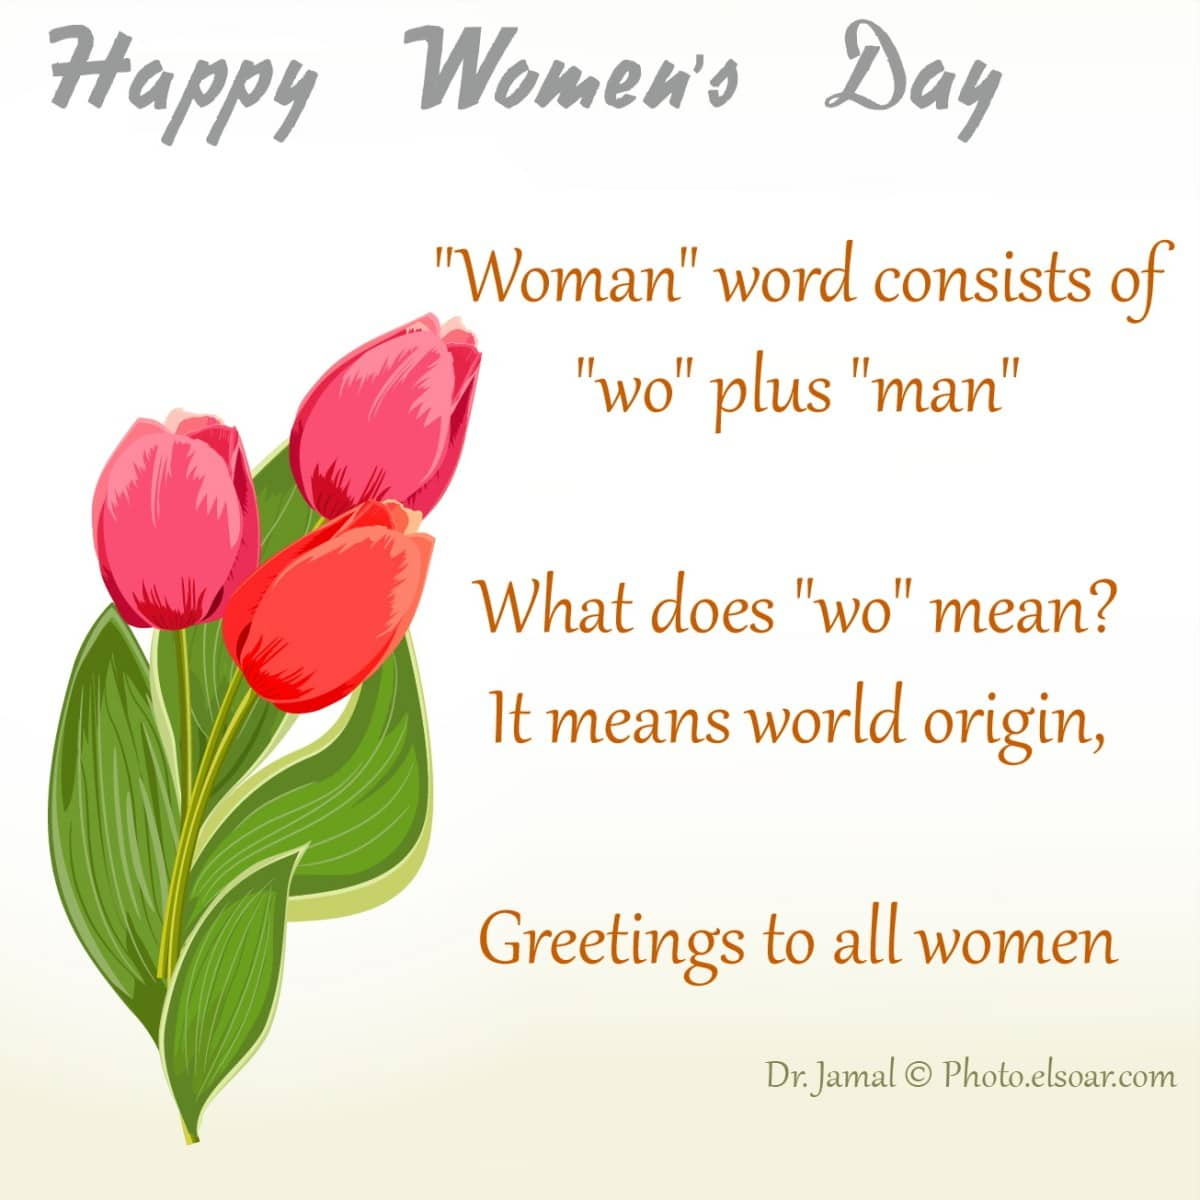 Happy Women's Day Wishes Saying and Quotes for her